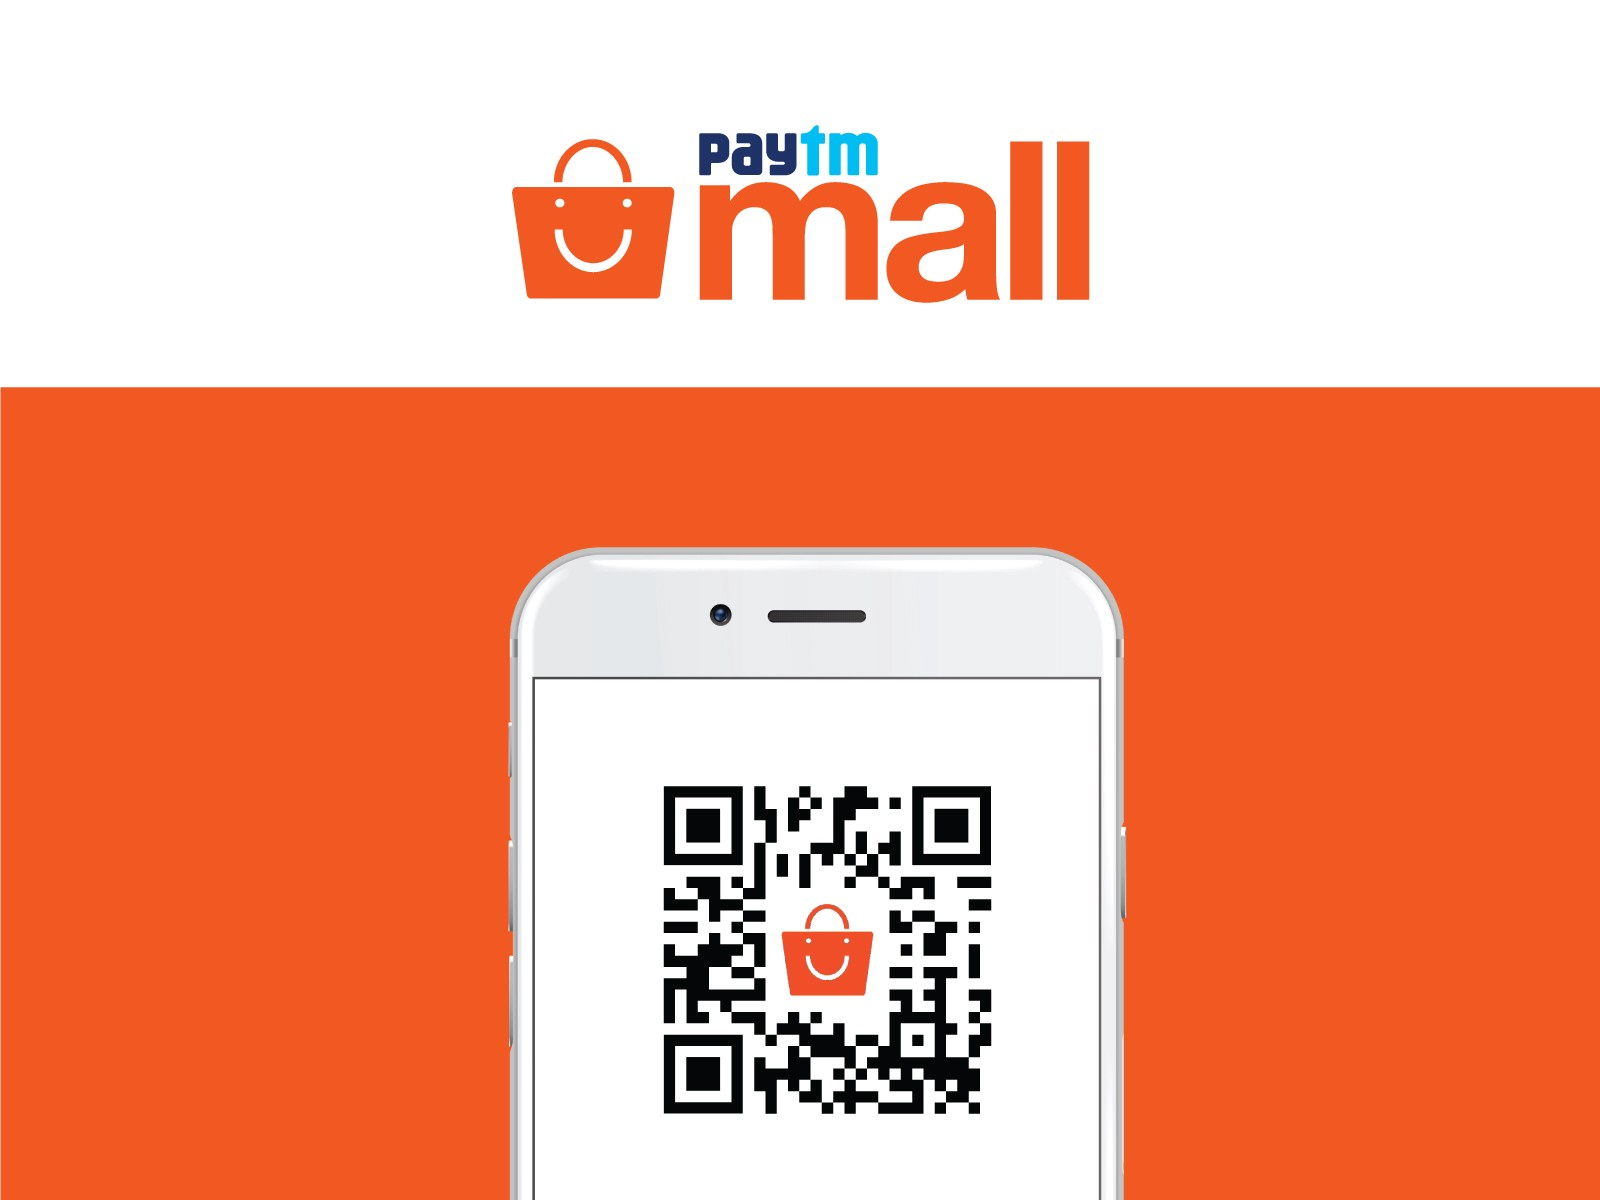 We will help trusted local shops sell online on Paytm Mall